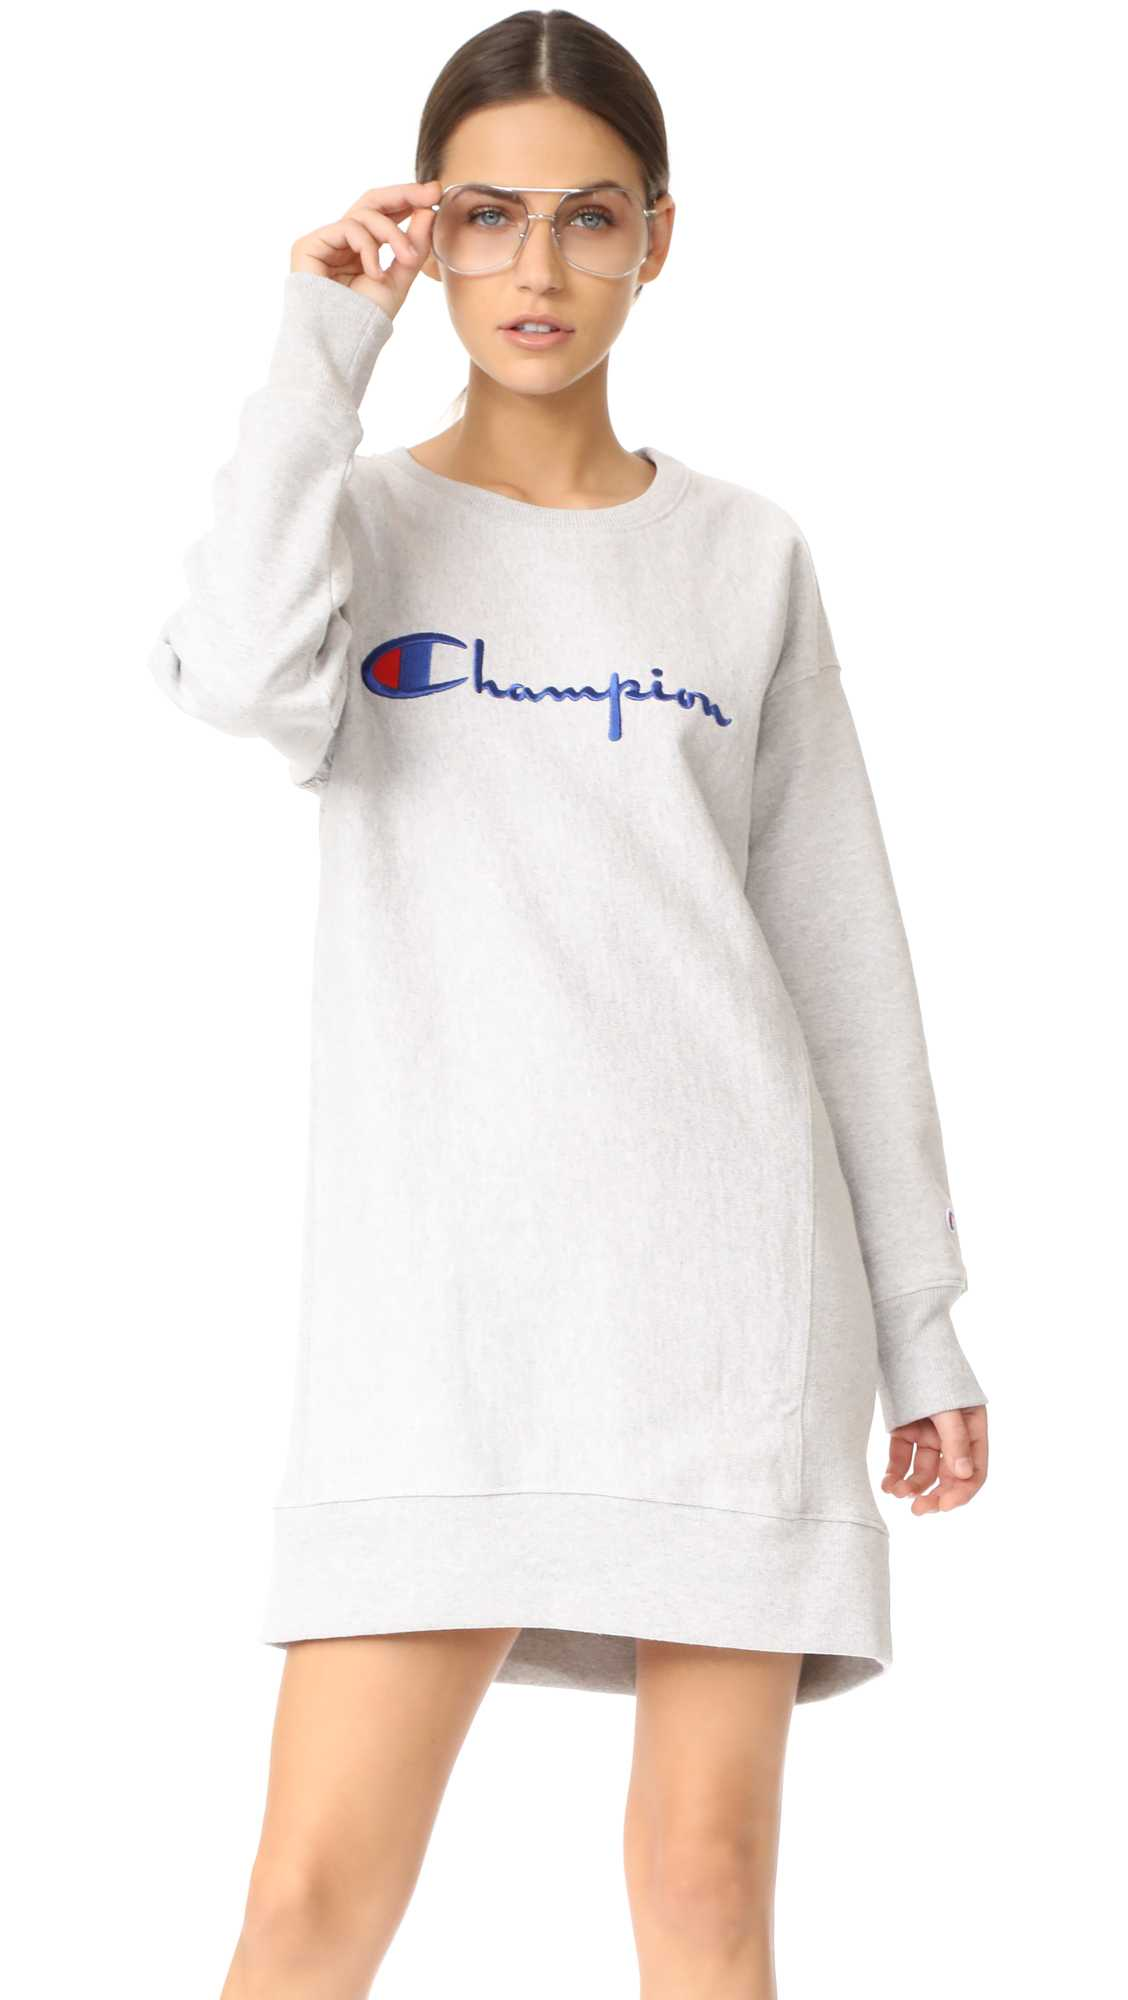 Champion sweatshirt, available at Shopbop